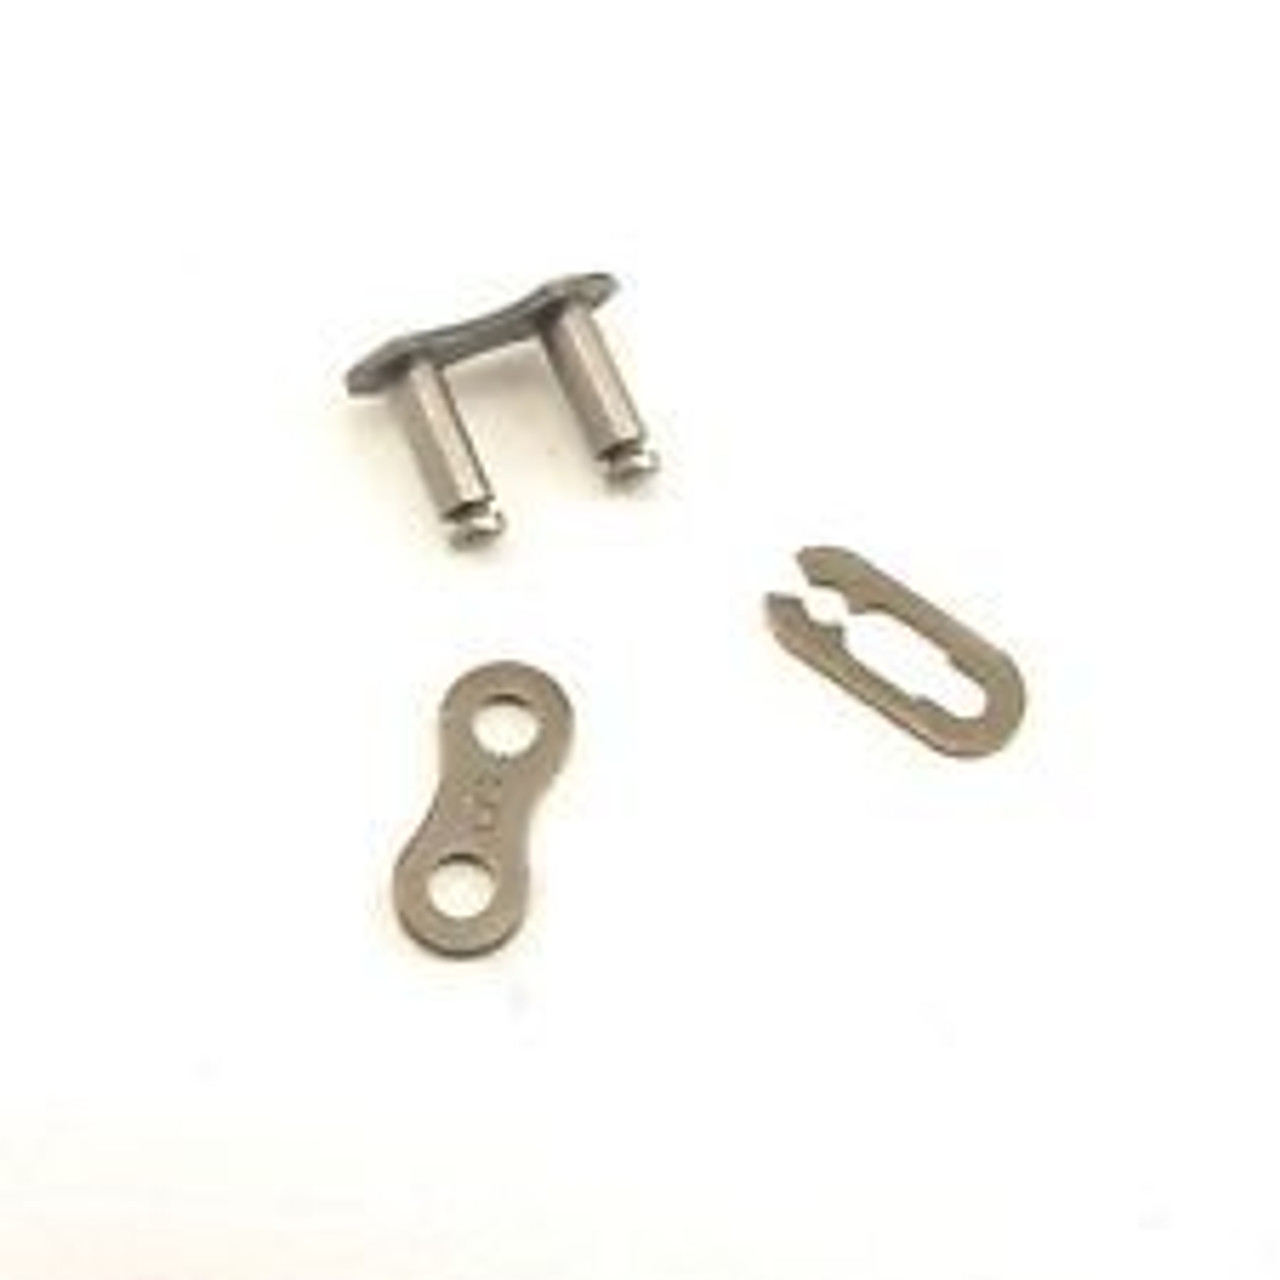 Drum Workshop Chain Link Connector, Single, & Pin